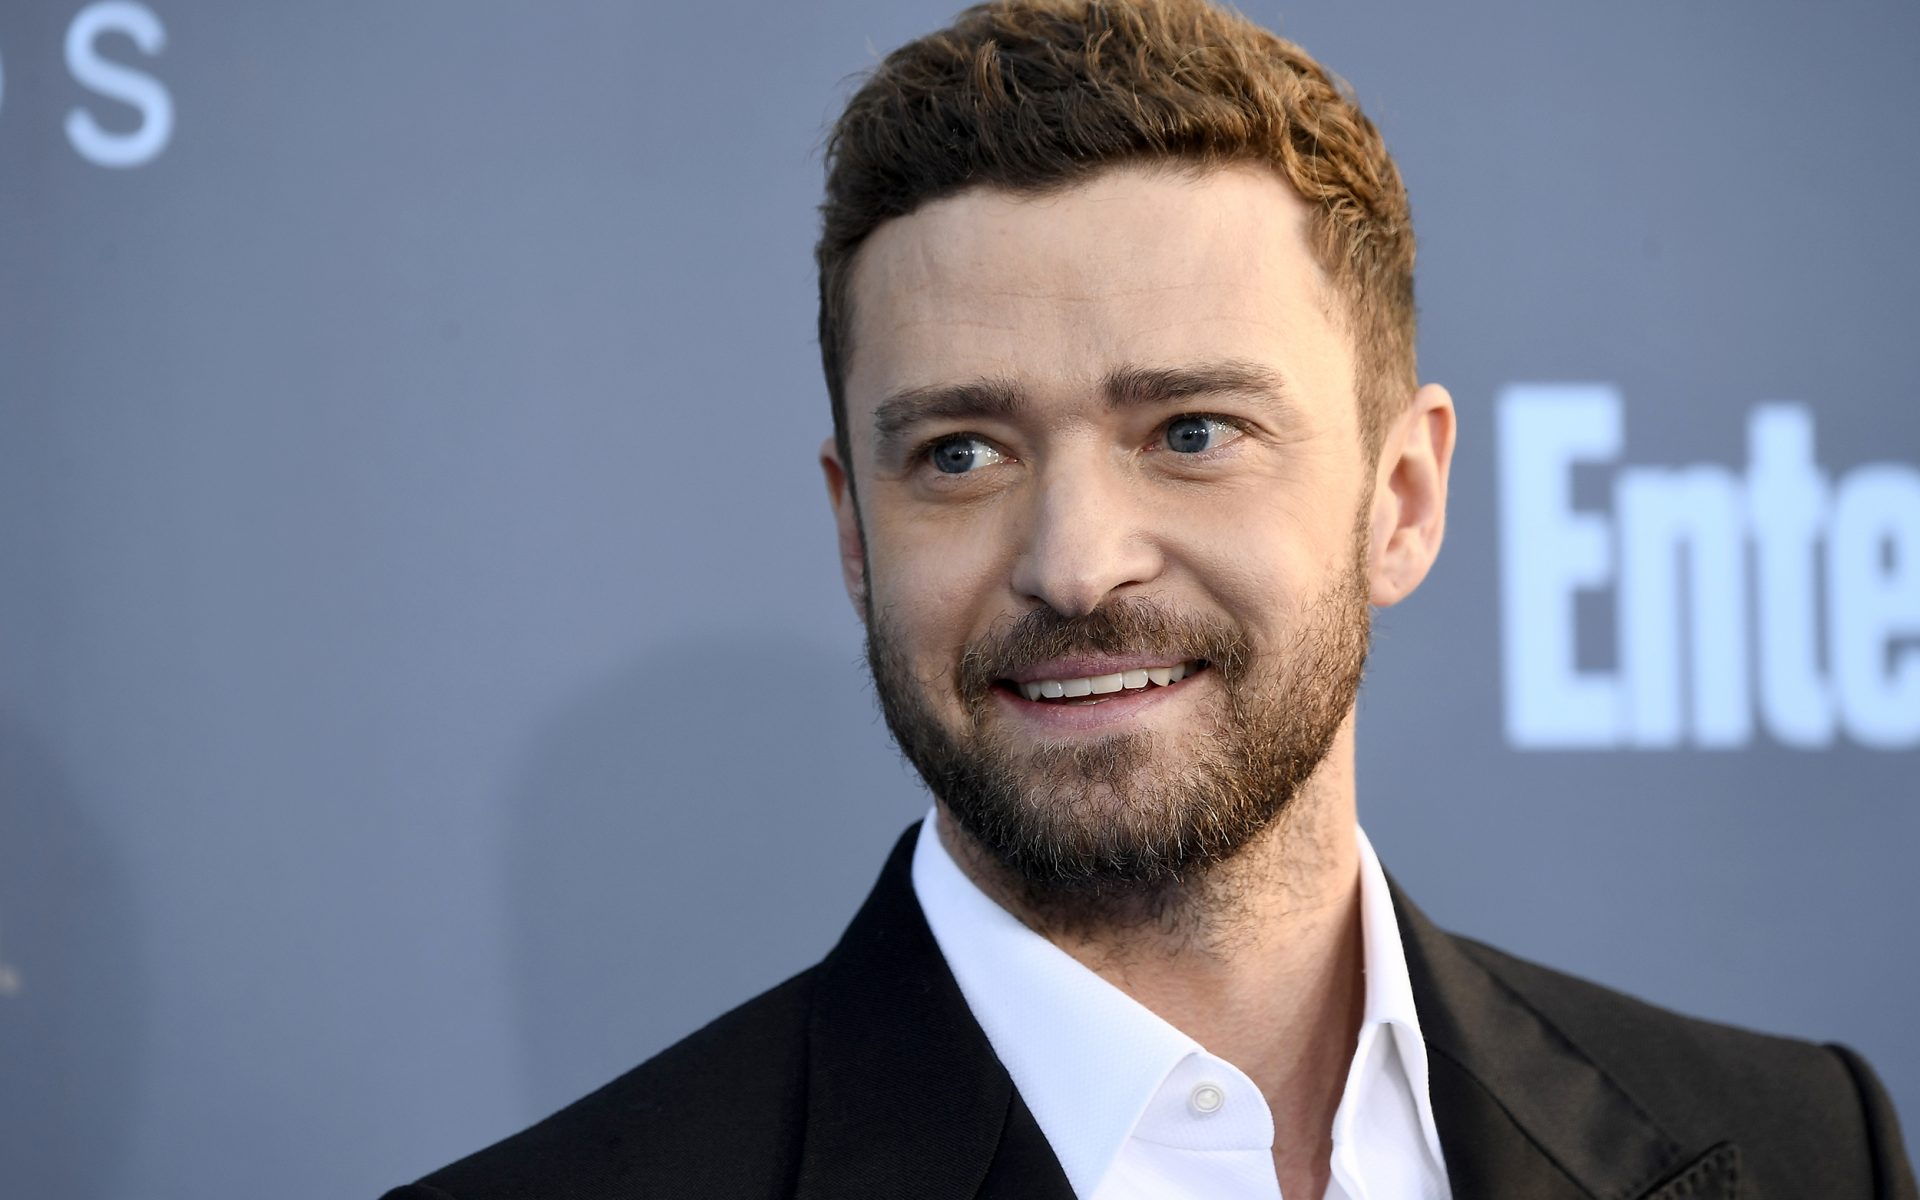 Justin Timberlake Reschedules NYC Show Citing 'Severely Bruised' Vocal Cords